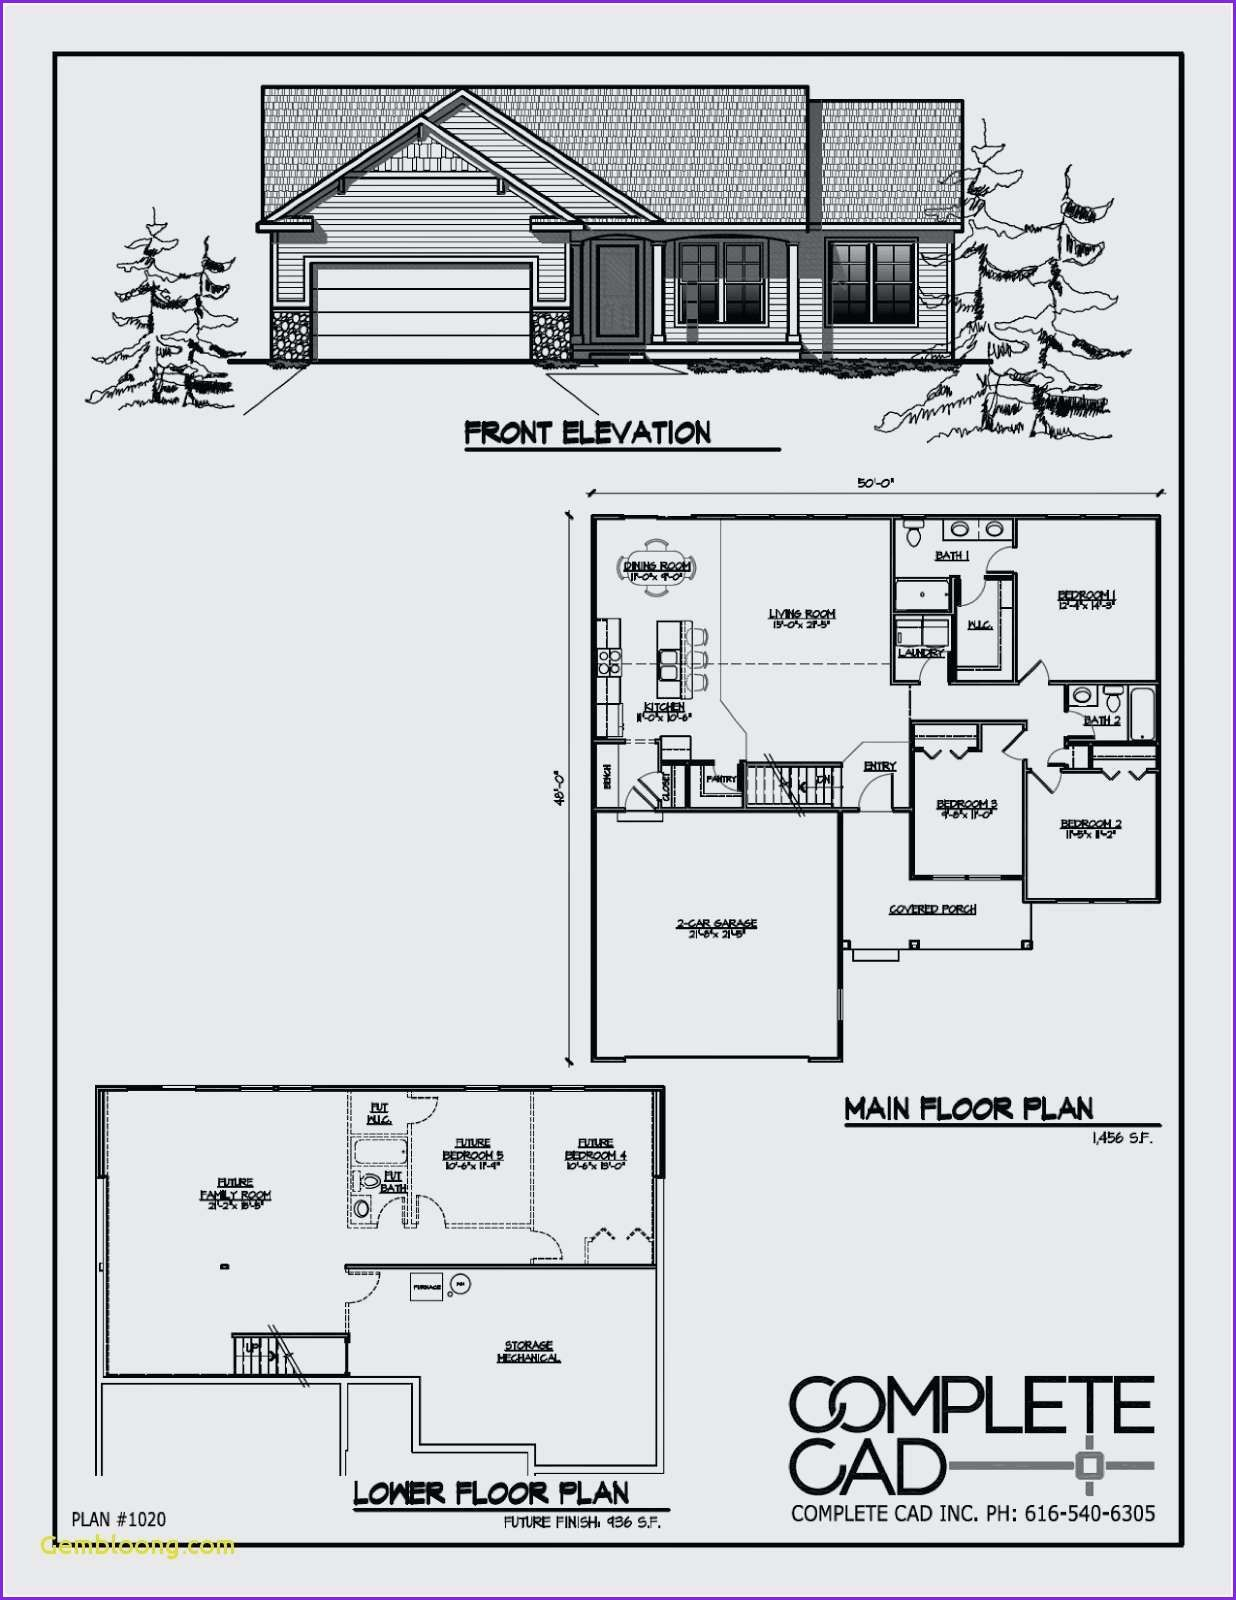 Awesome Circular House Plans Accessible House Plans Master Bedroom Floor Plan Ideas Accessible House